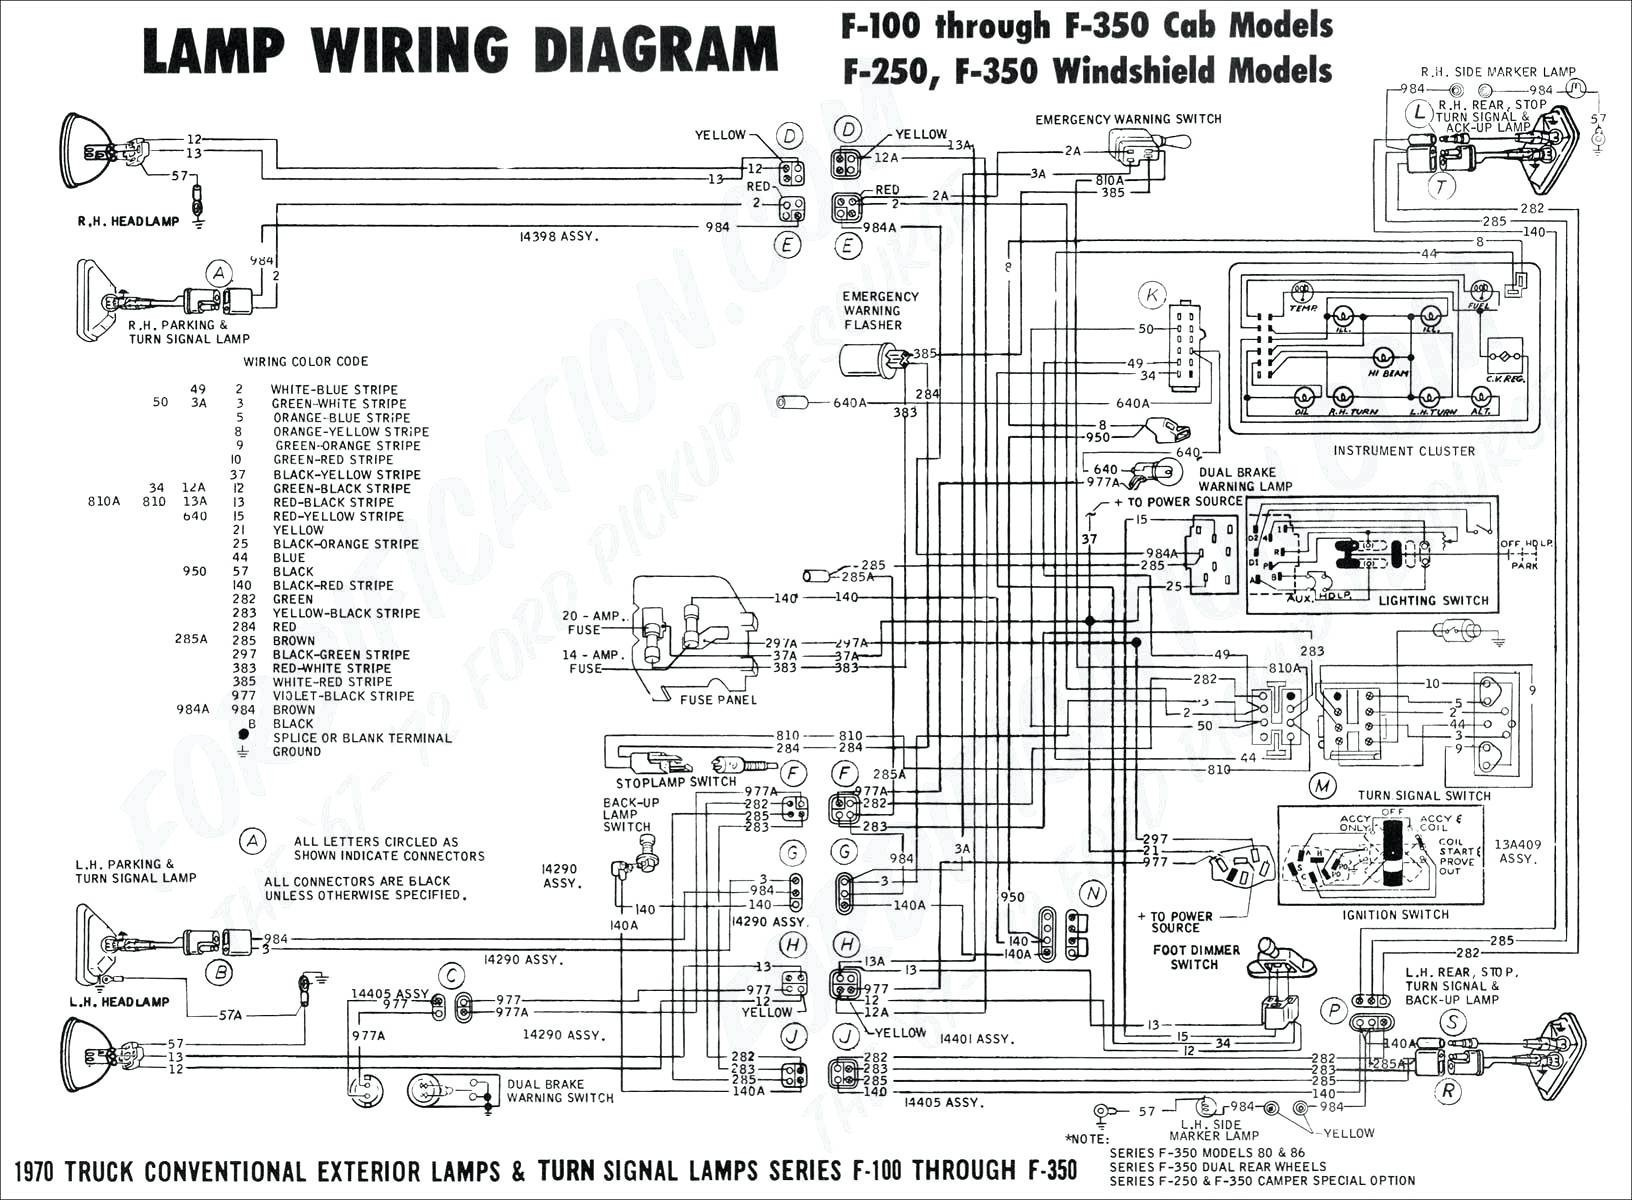 Car Stereo Amplifier Wiring Diagram Kenwood Amp Wiring ... on